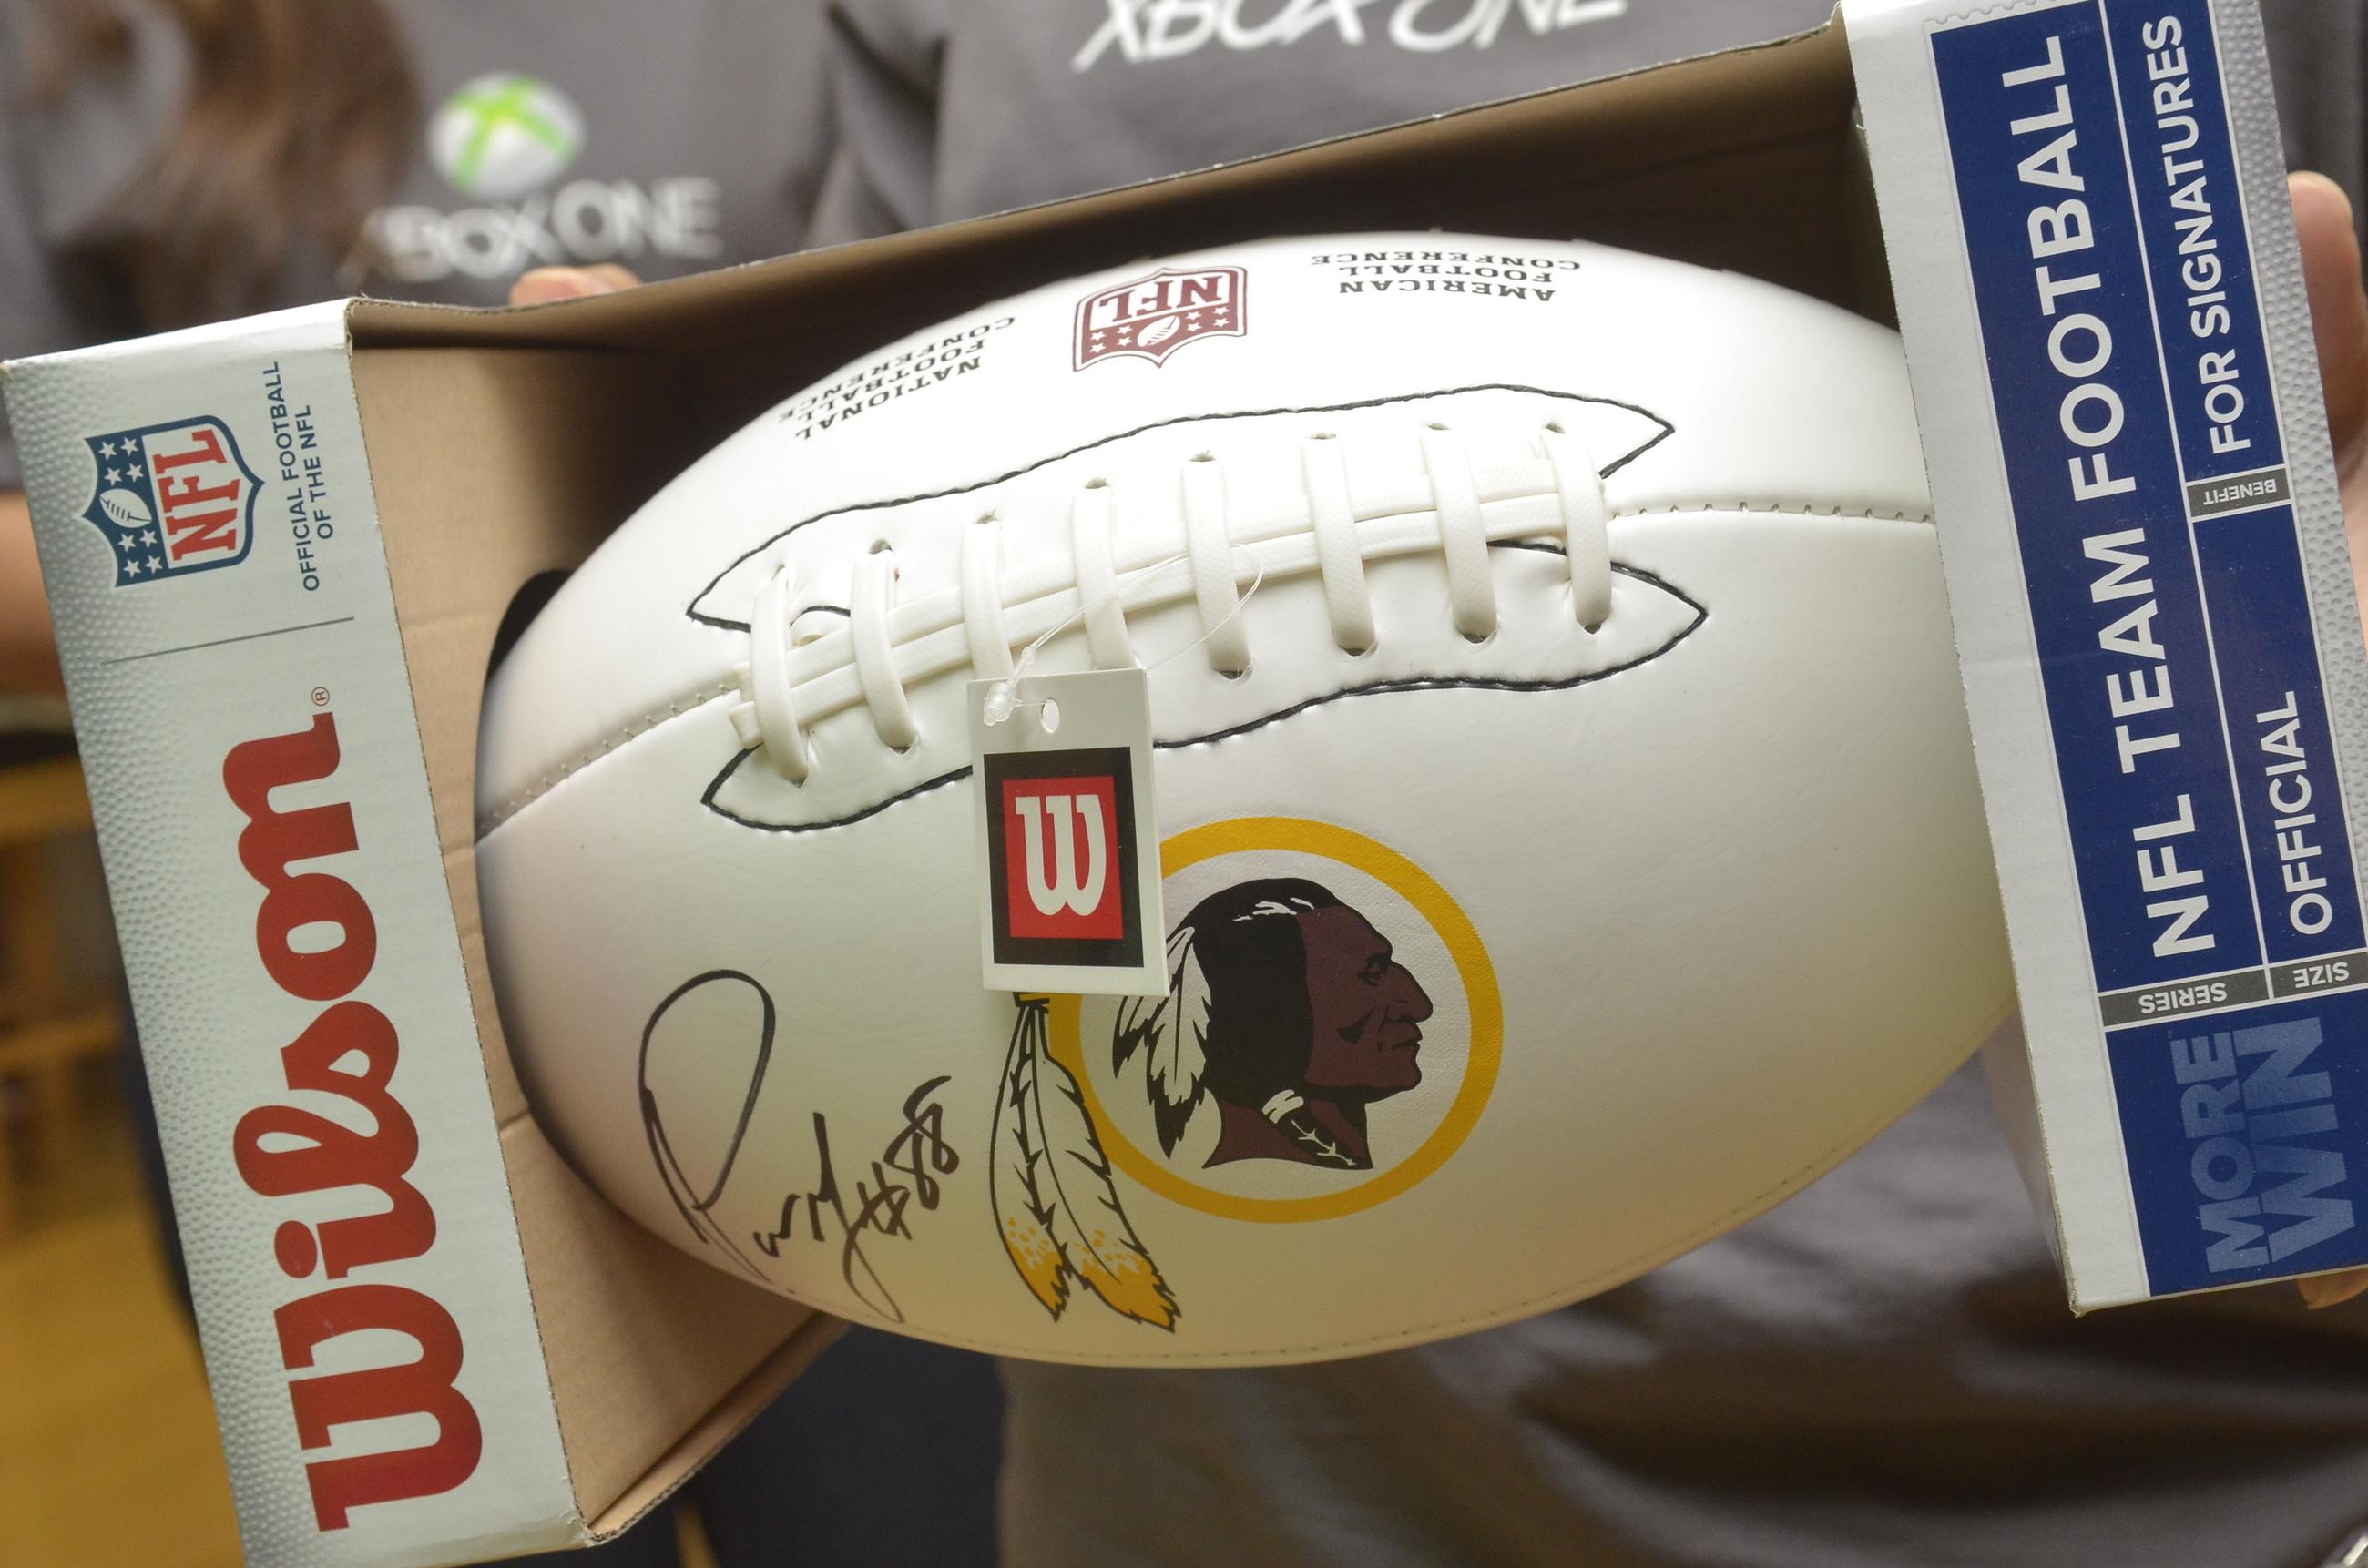 Lawmakers Threaten NFL's Tax-Exempt Status Over 'Redskins' Name